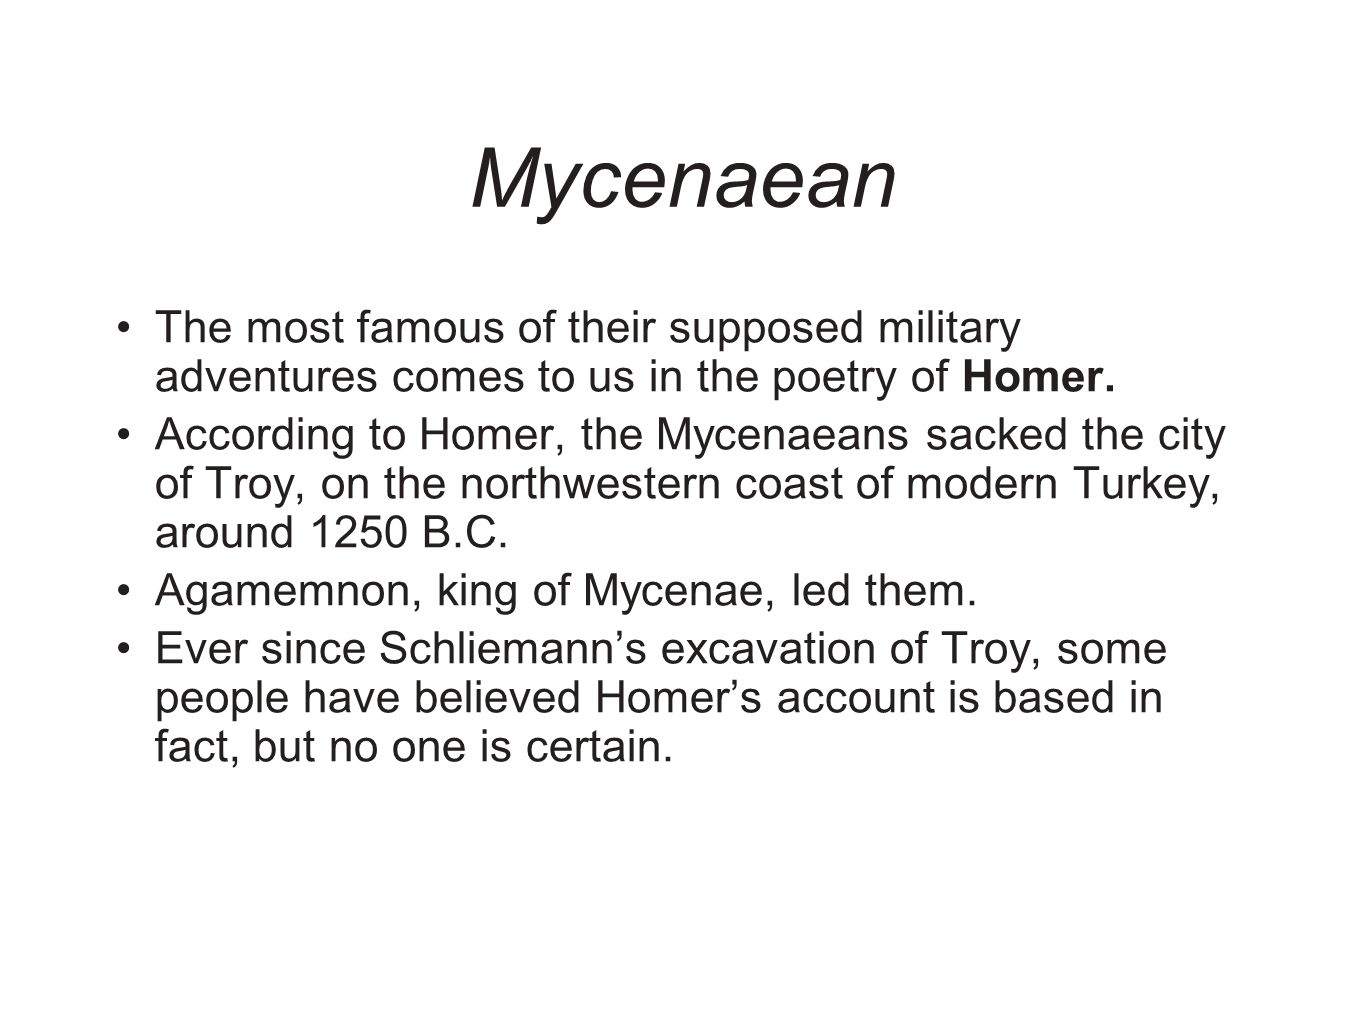 MycenaeanThe most famous of their supposed military adventures comes to us in the poetry of Homer.